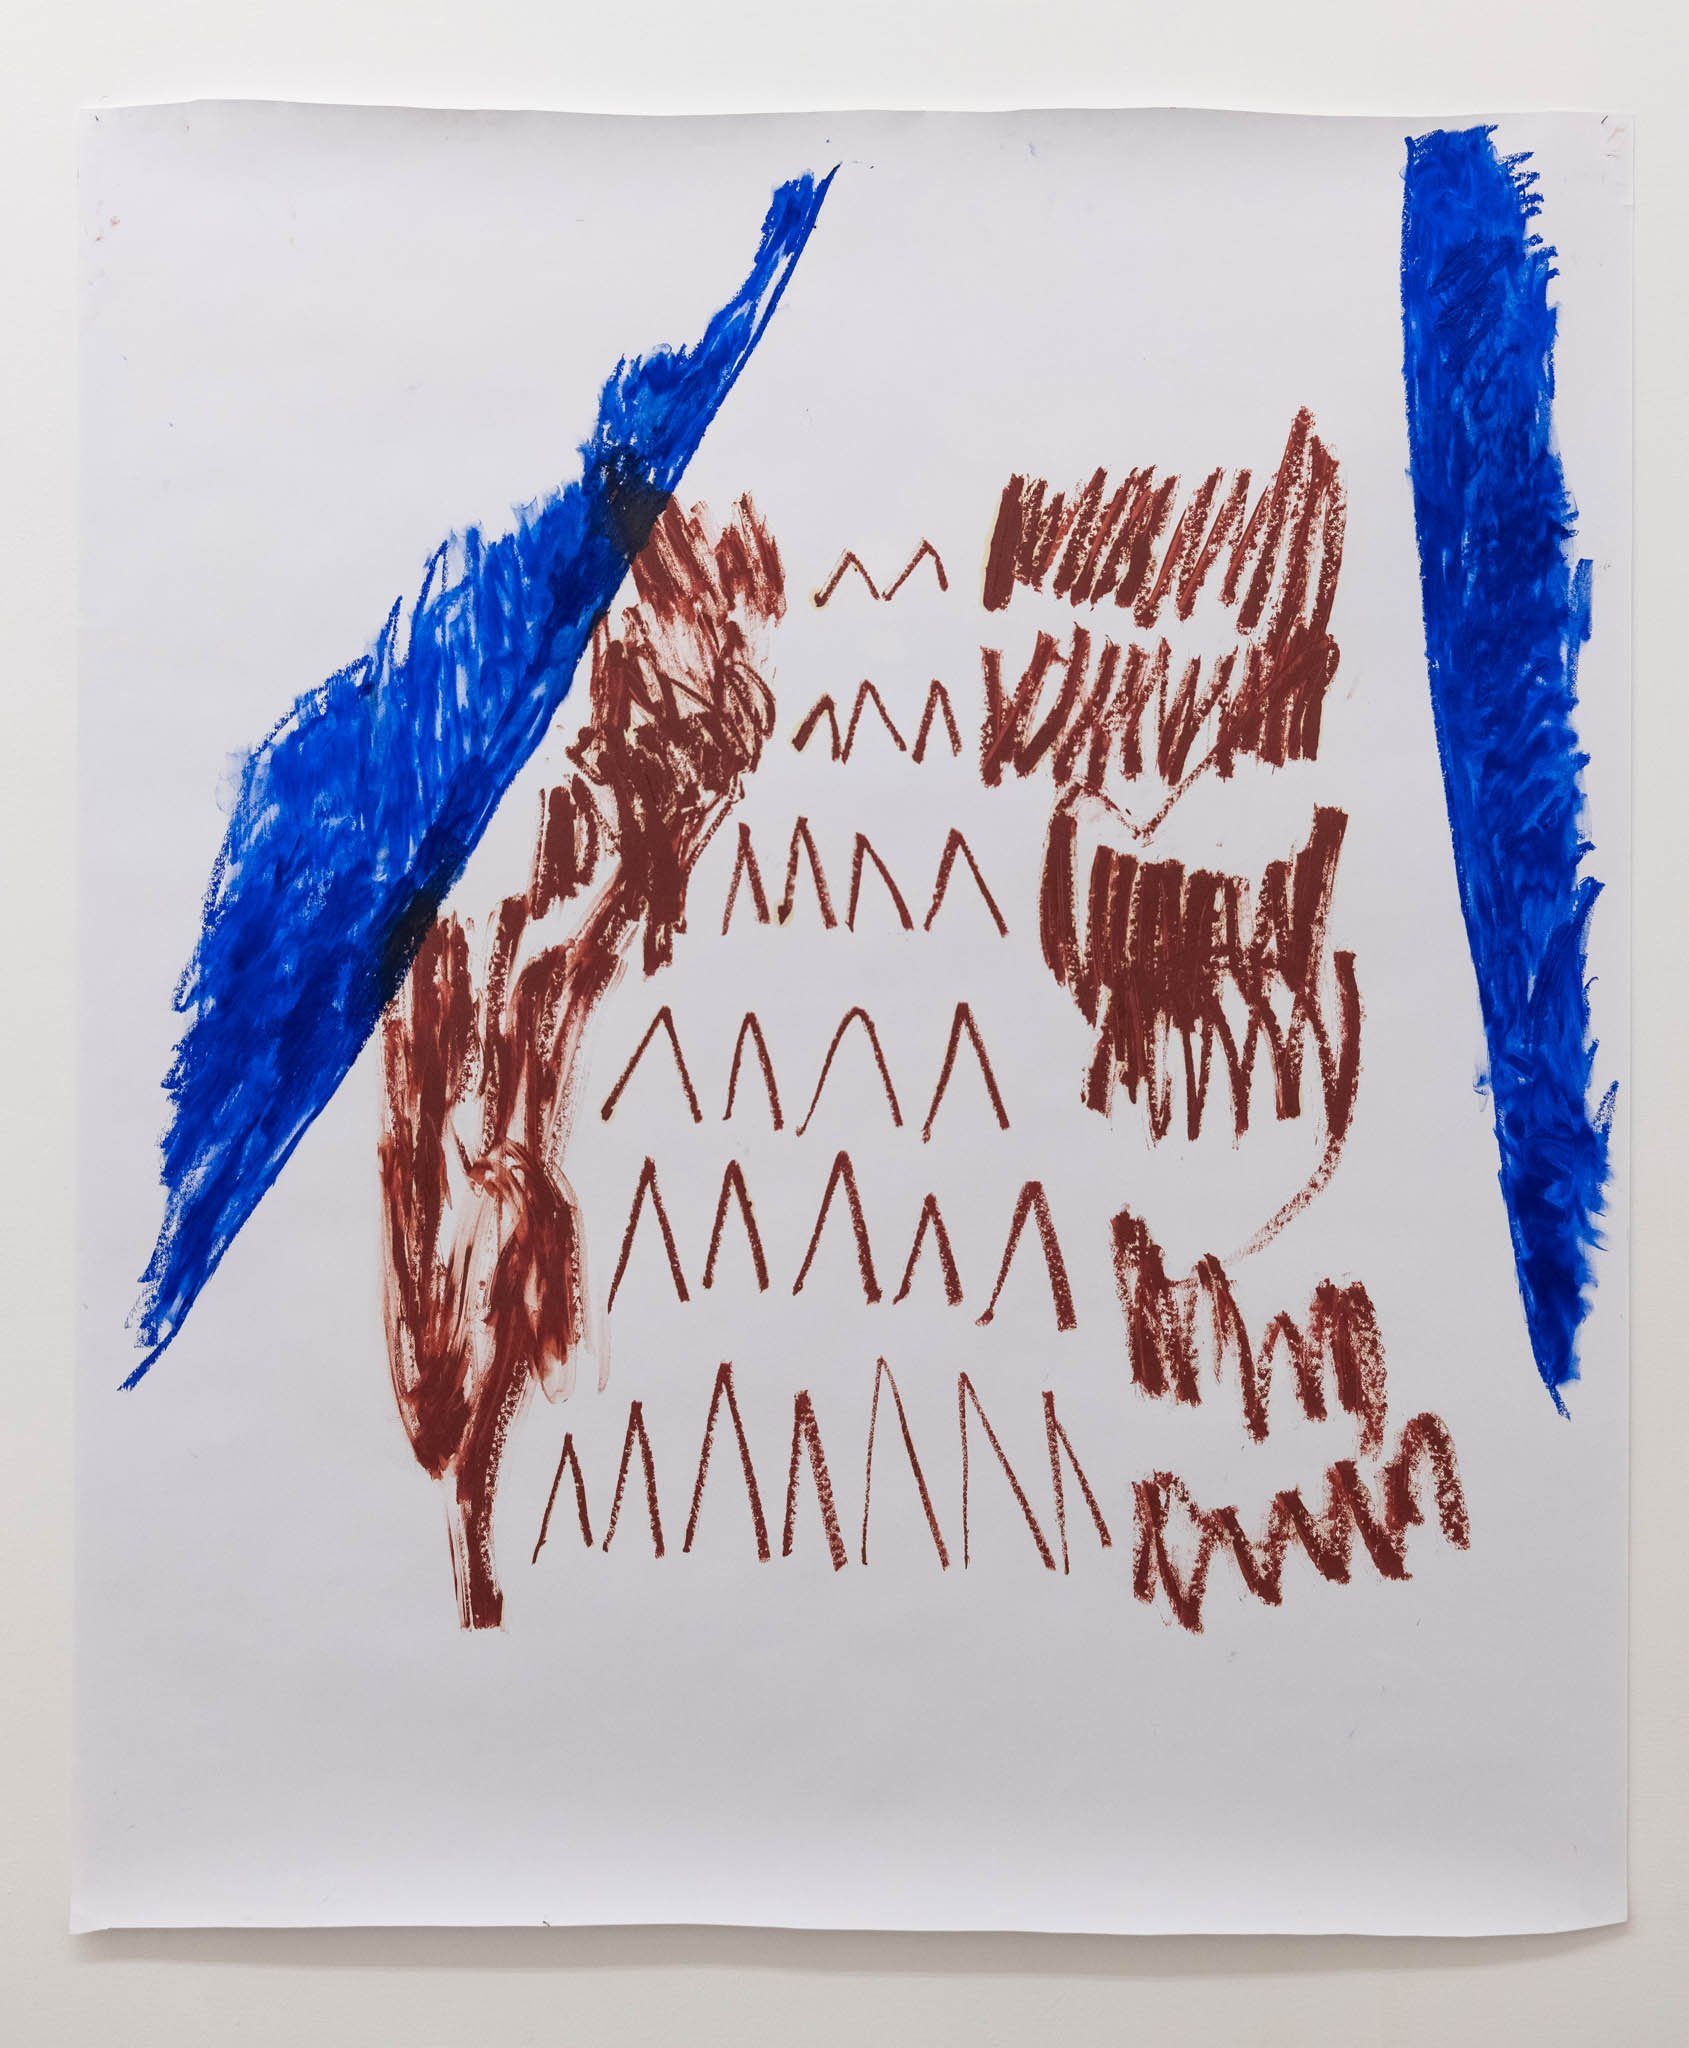 Esther Kläs NY/FLY, 2018, oli stick on paper; Courtesy the artist and Peter Blum Gallery, New York; photo Giorgio Benni